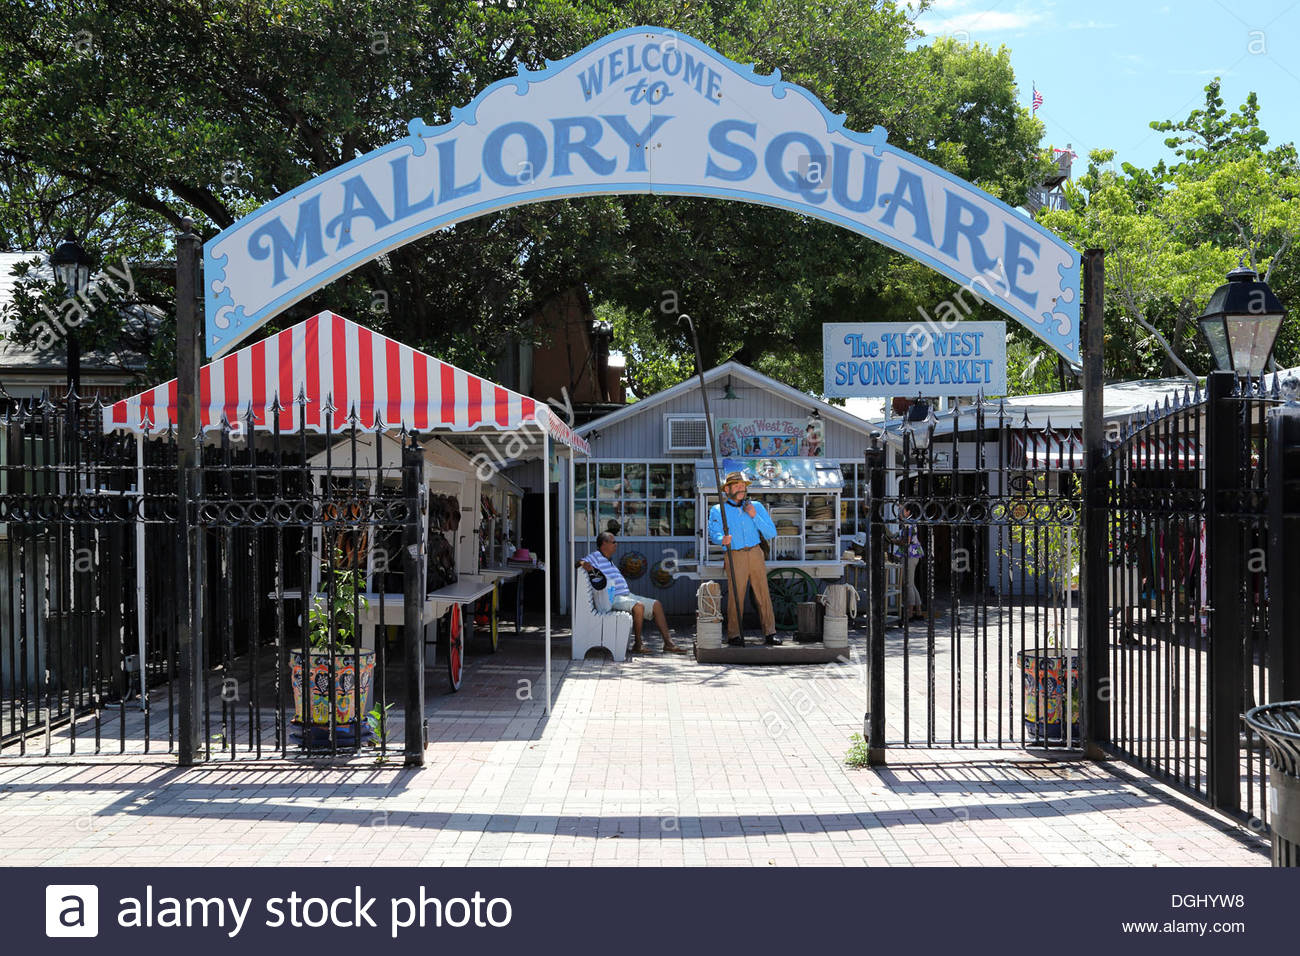 entrance to mallory square key west at the southern end of the florida keys - Stock Image